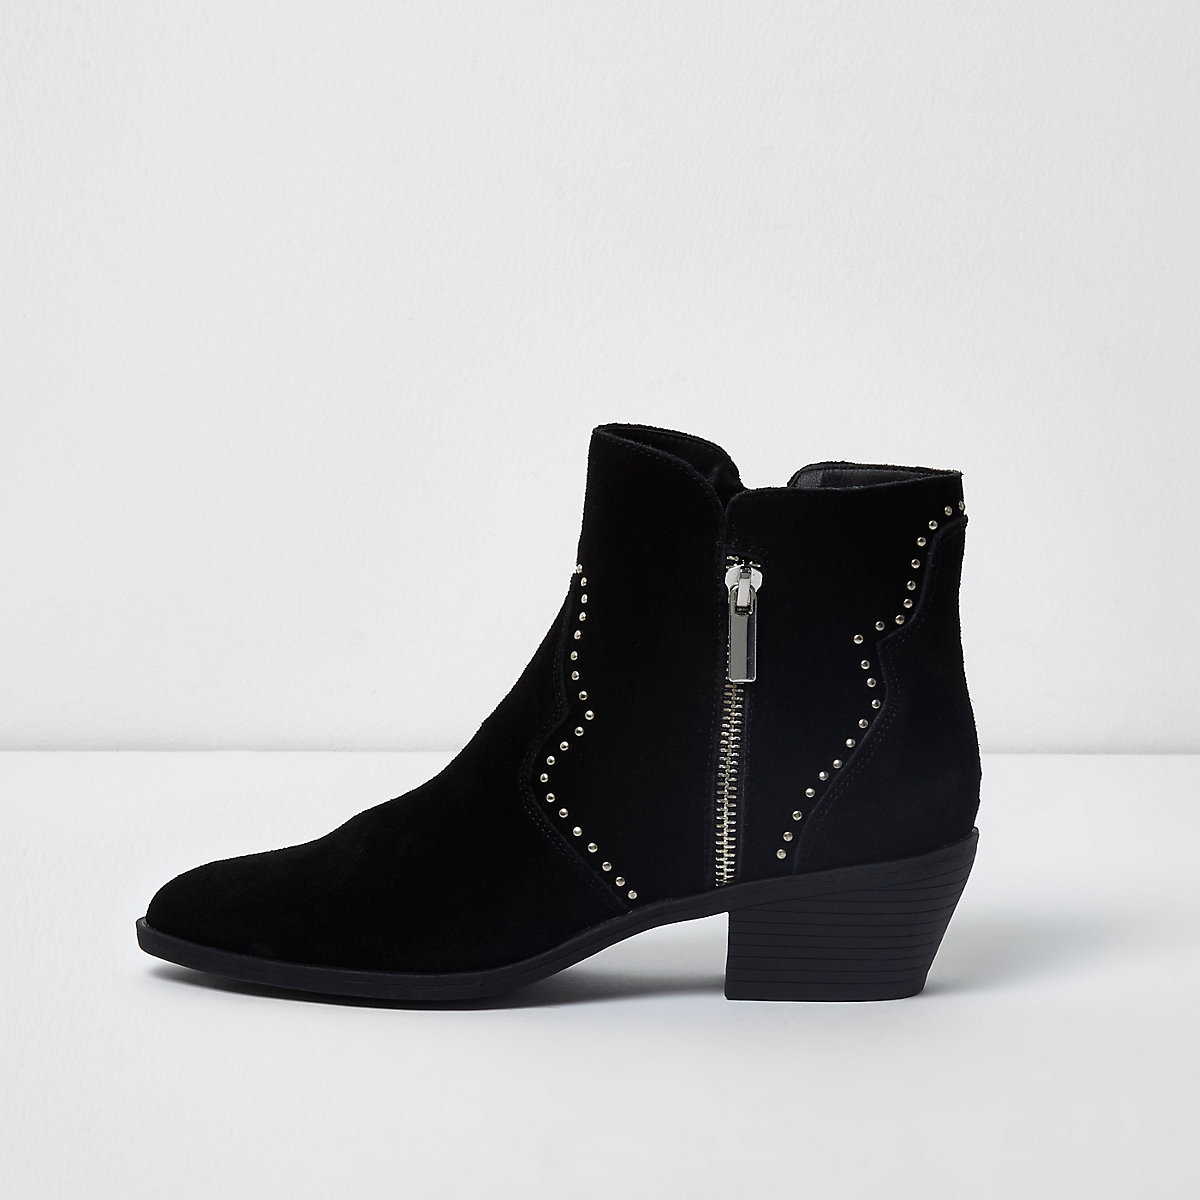 Black studded western suede ankle boots